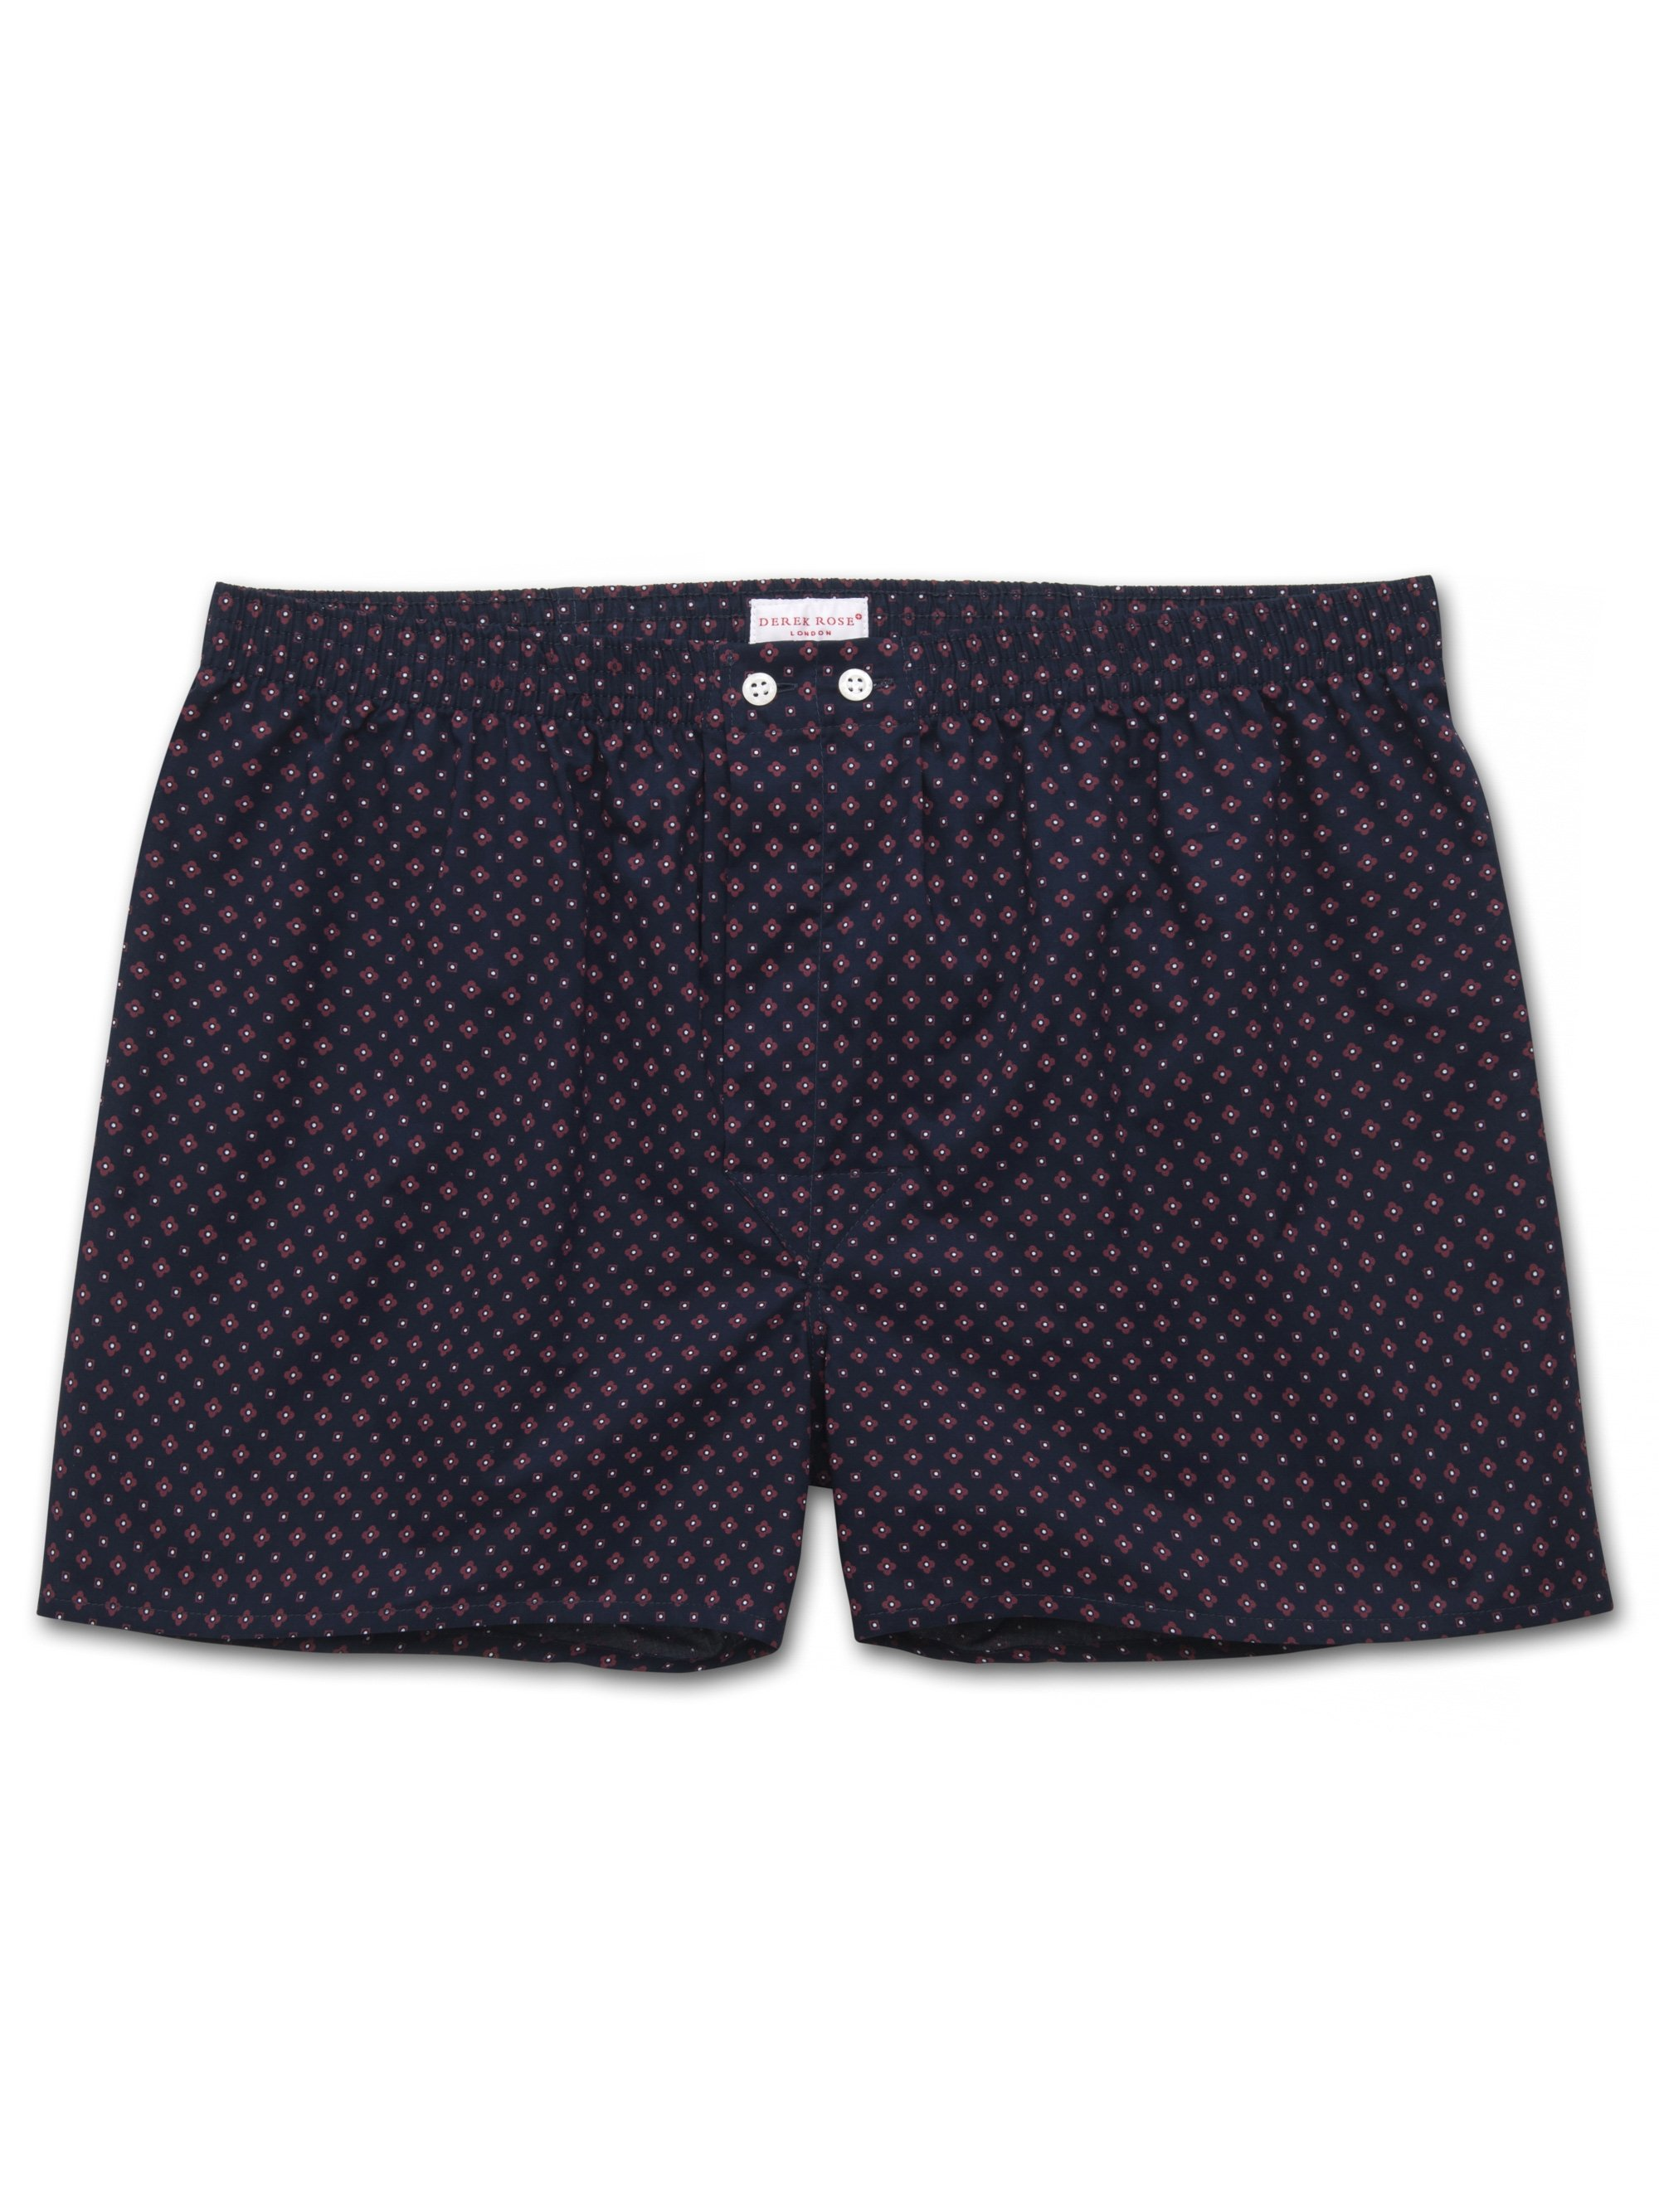 Men's Classic Fit Boxer Shorts Nelson 72 Cotton Batiste Navy